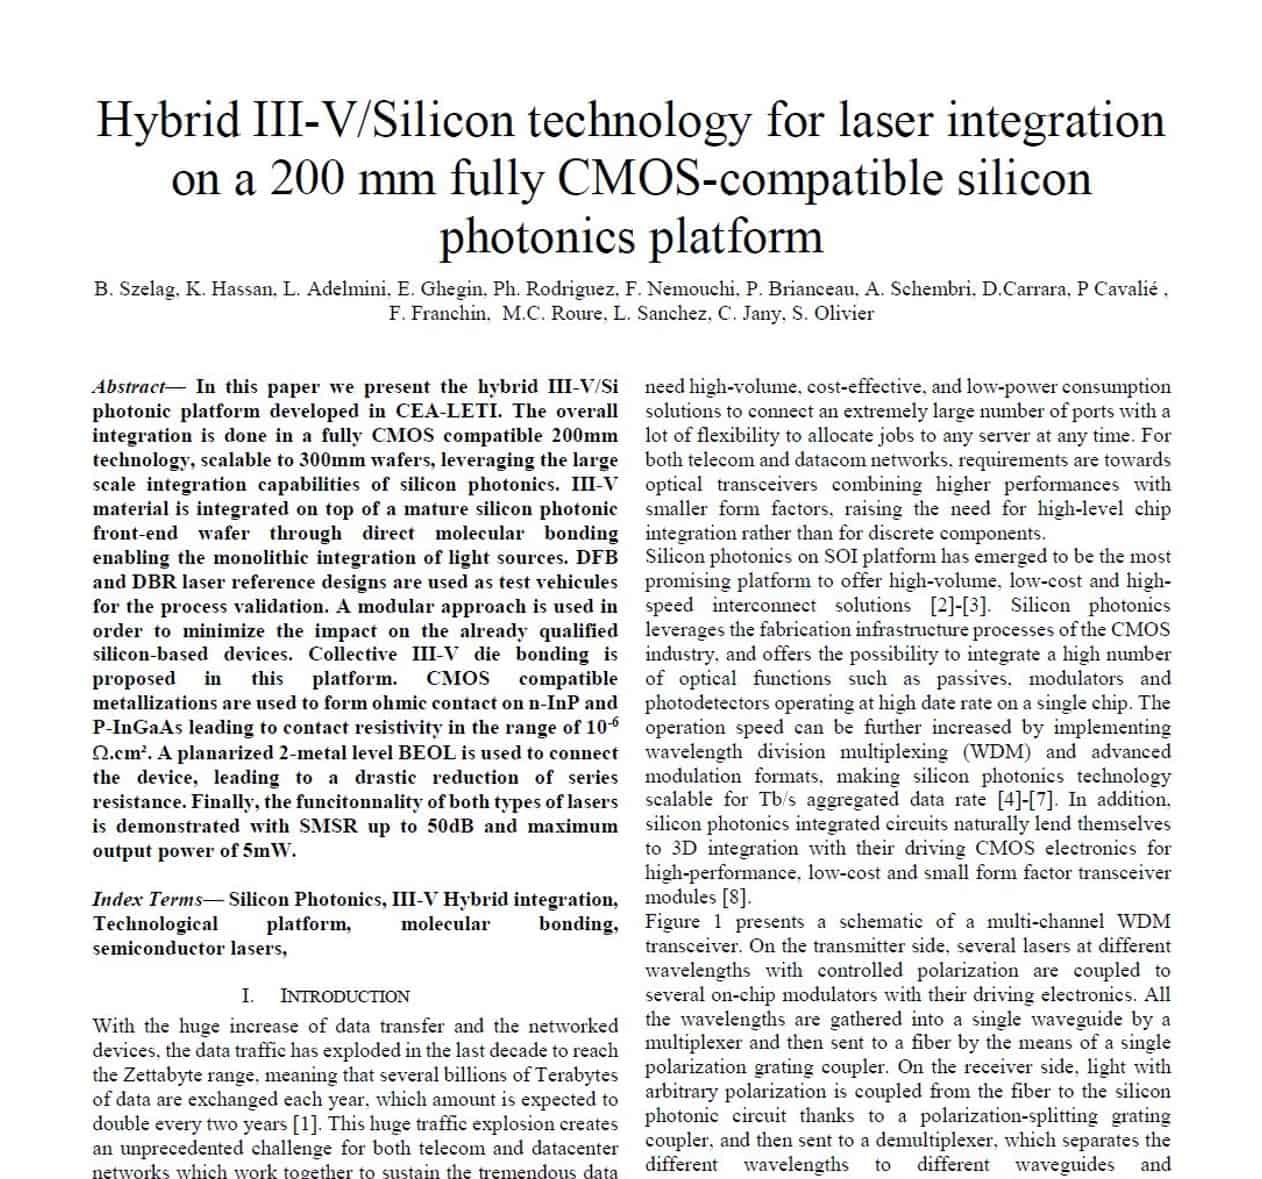 Hybrid III–V/Silicon Technology for Laser Integration on a 200-mm Fully CMOS-Compatible Silicon Photonics Platform